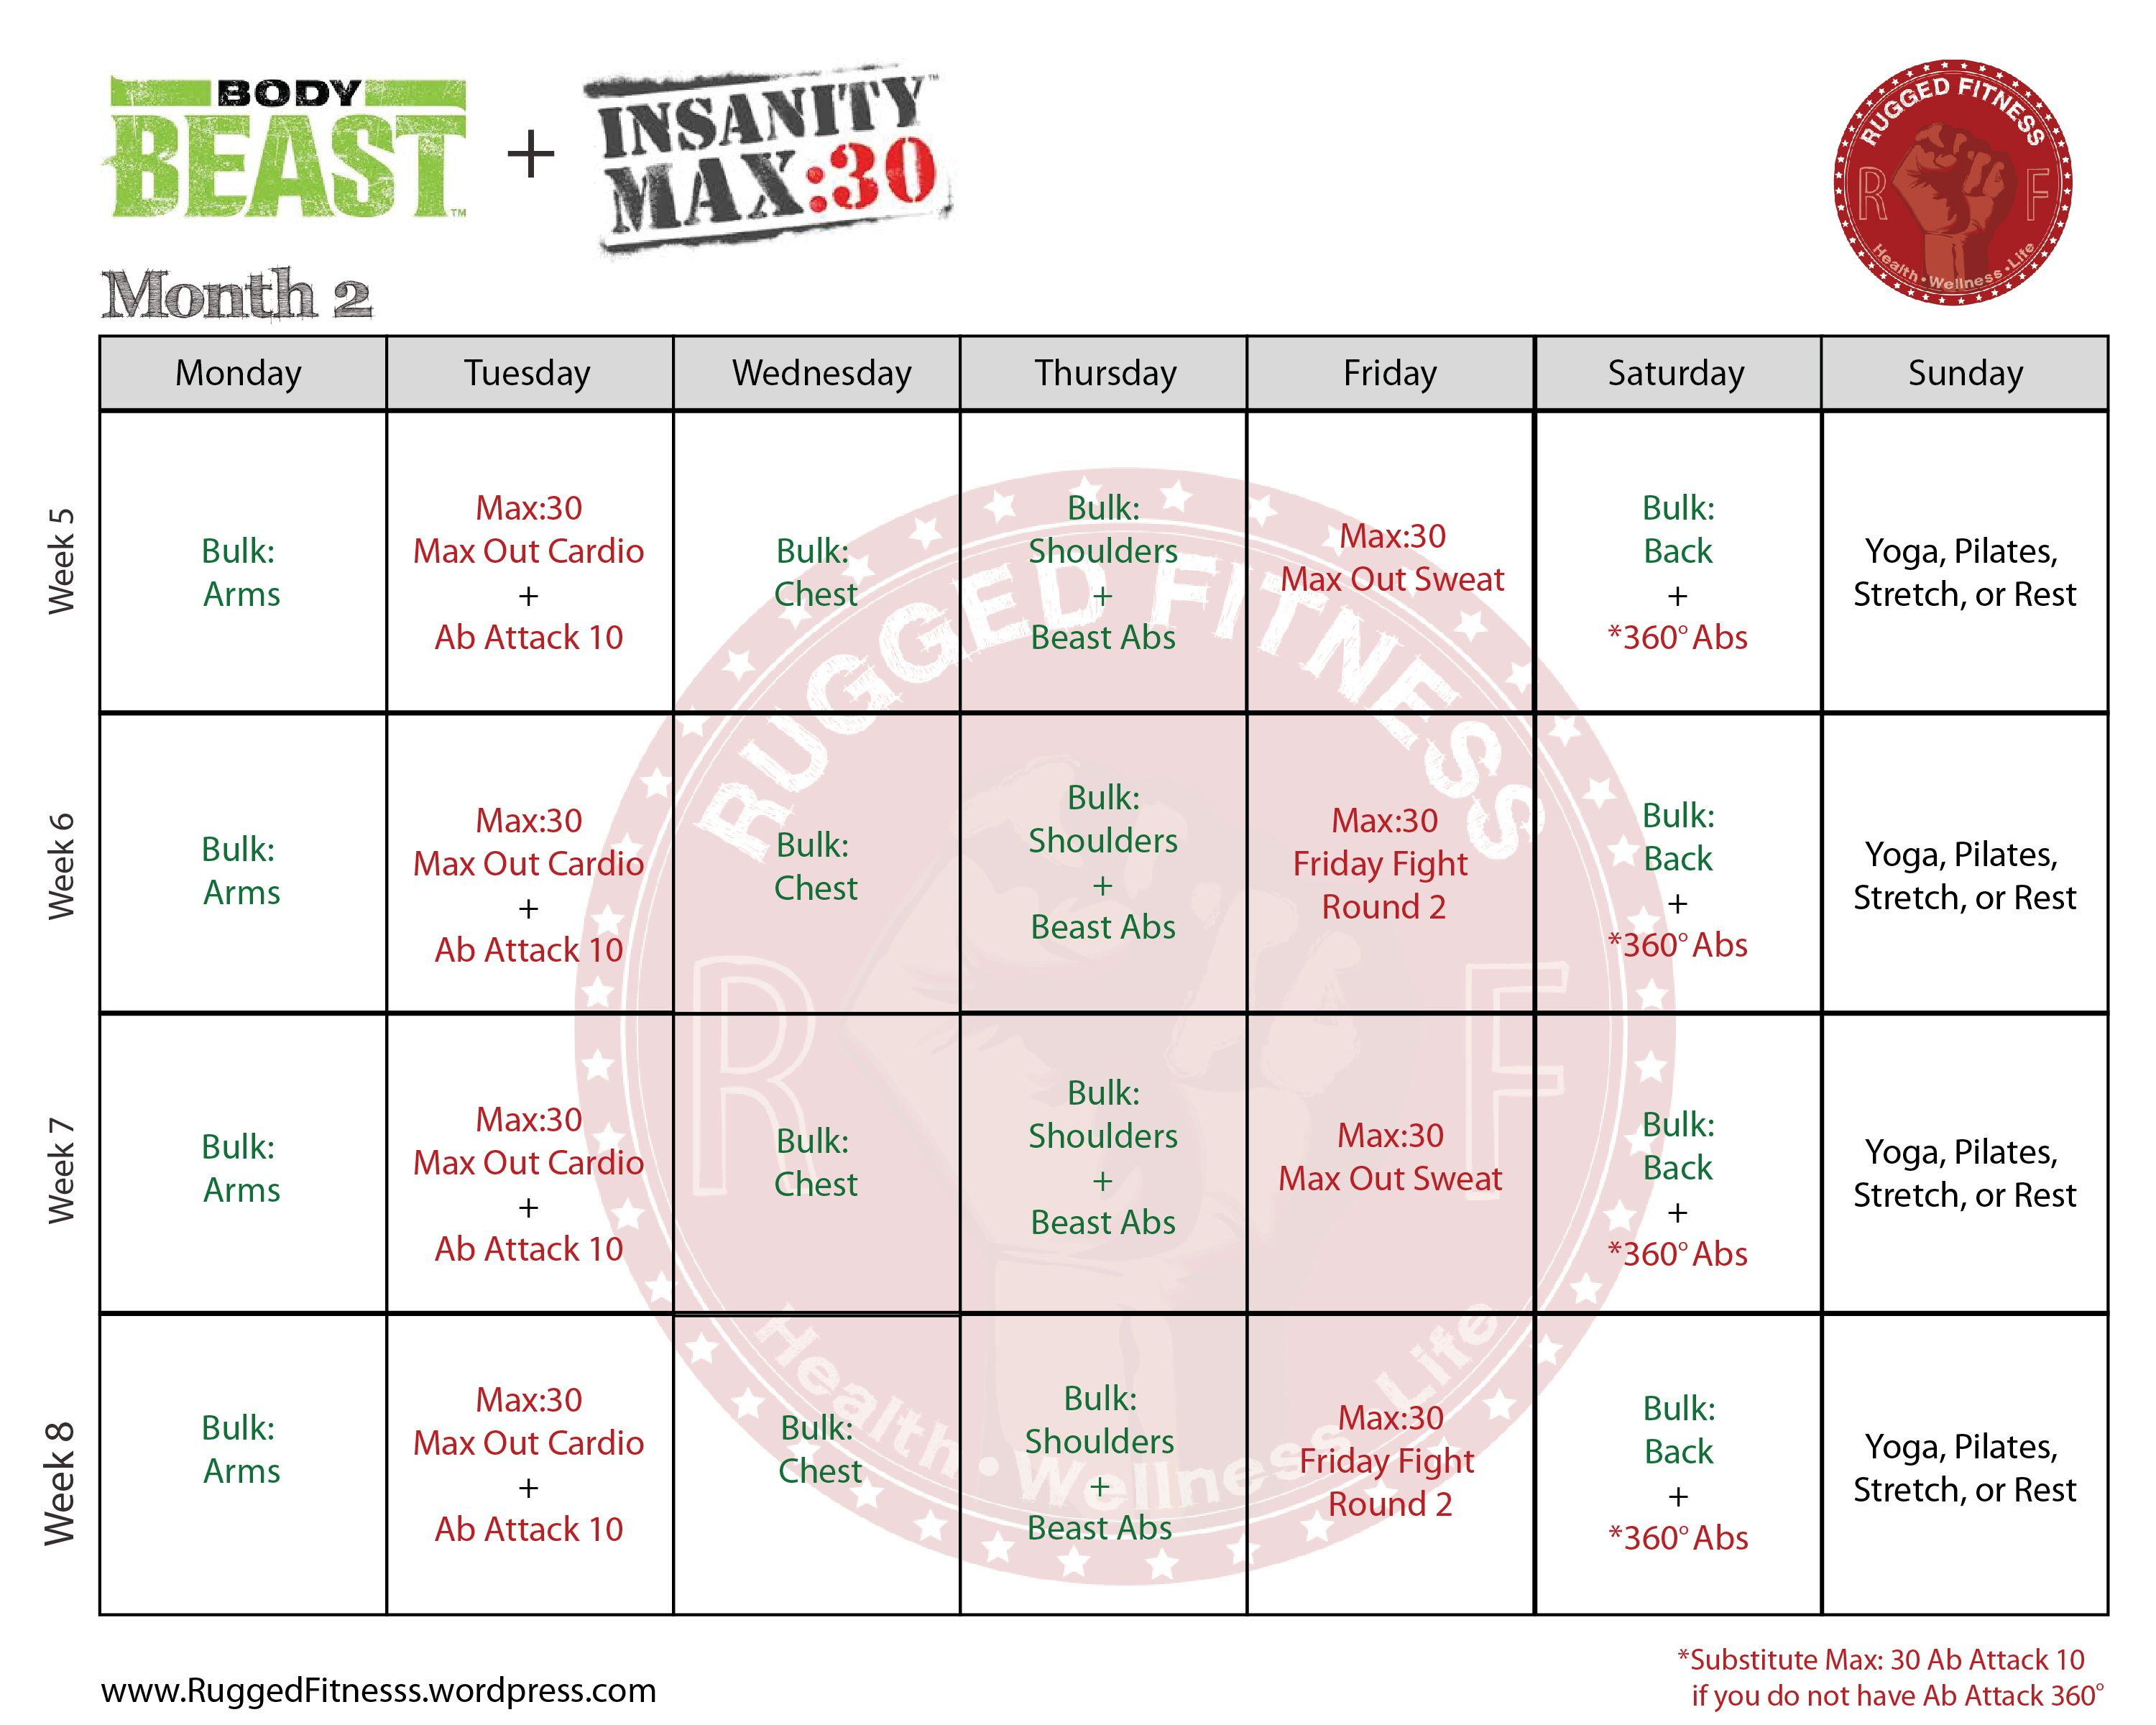 Body Beast + Insanity: Max 30 Hybrid Schedule | Body Beast in Insanity Max 30 Body Beast Hybrid